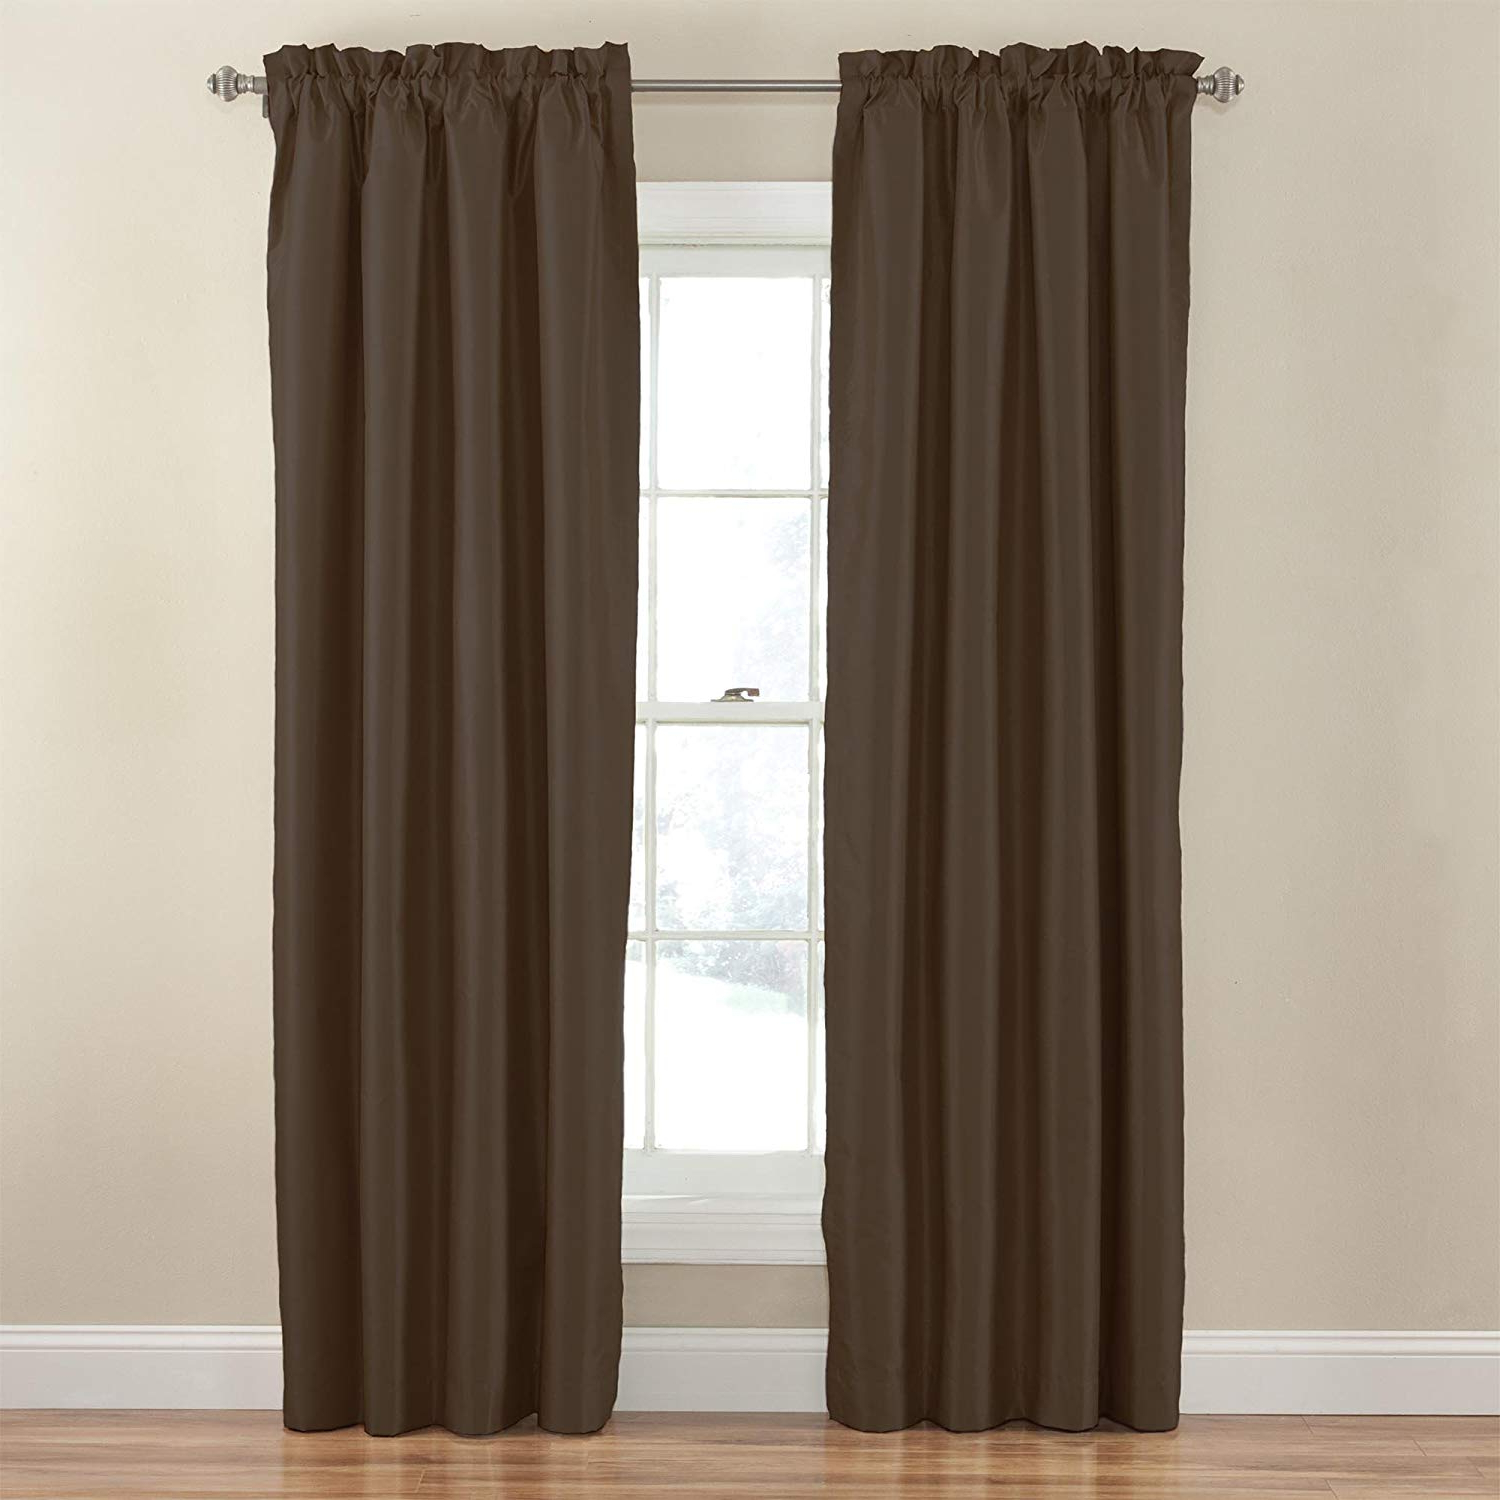 Widely Used Hayden Rod Pocket Blackout Panels For Eclipse 14383042X063Esp Hayden Solid 42 Inch63 Inch Blackout Single Window Curtain Panel, Espresso (View 12 of 20)